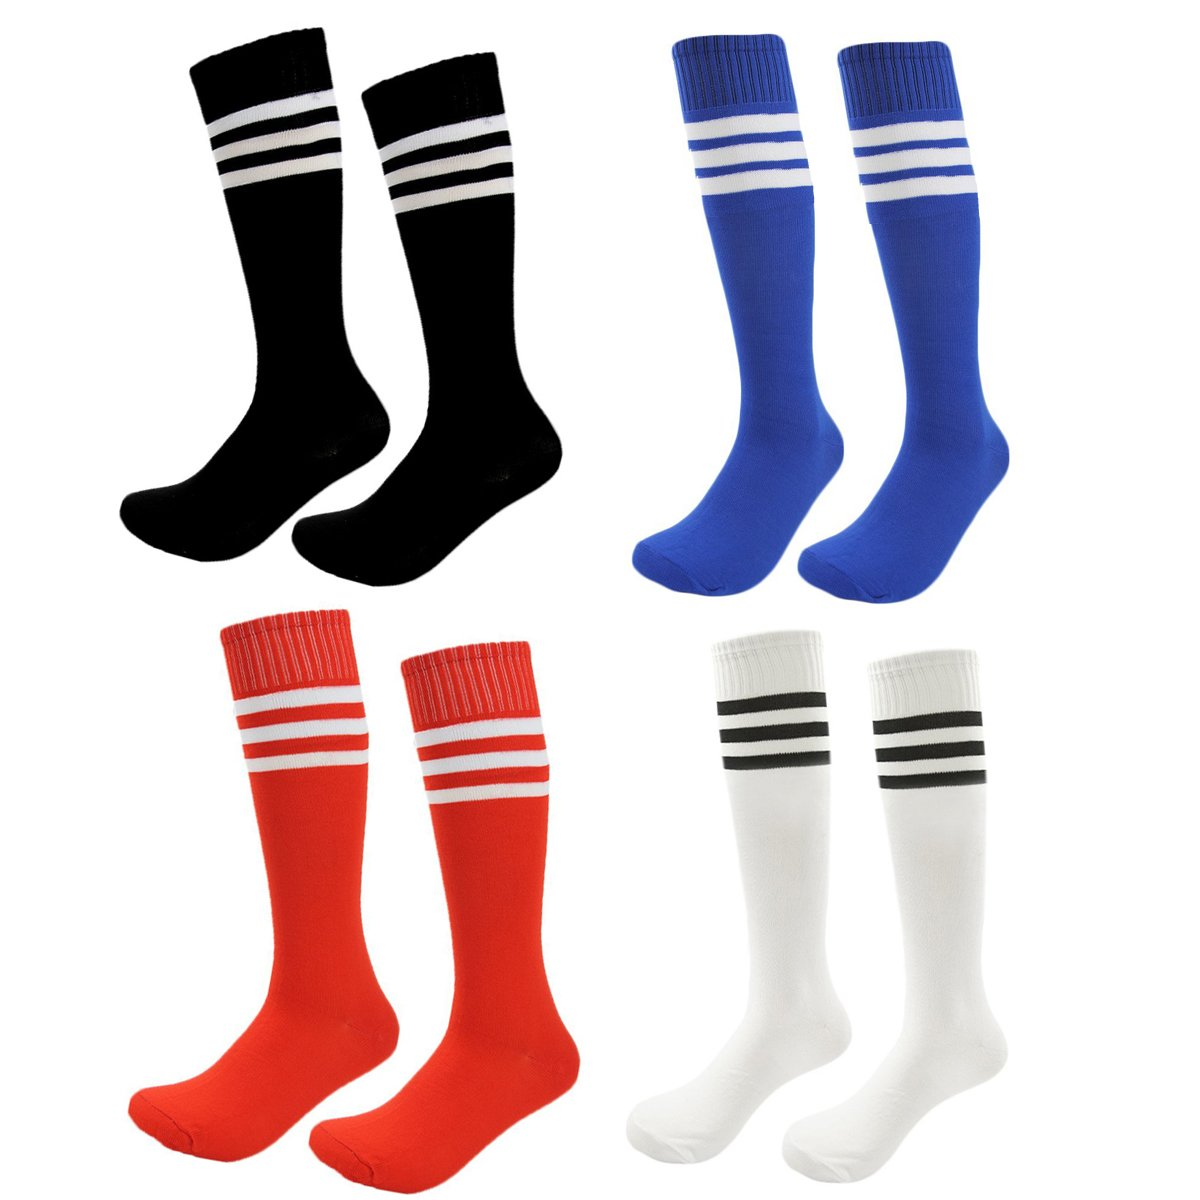 FoMann SOCKSHOSIERY ガールズ B075H6HSY7 Shoe size 6-10 and Ages 12-15|Rainbow1 Rainbow1 Shoe size 6-10 and Ages 12-15